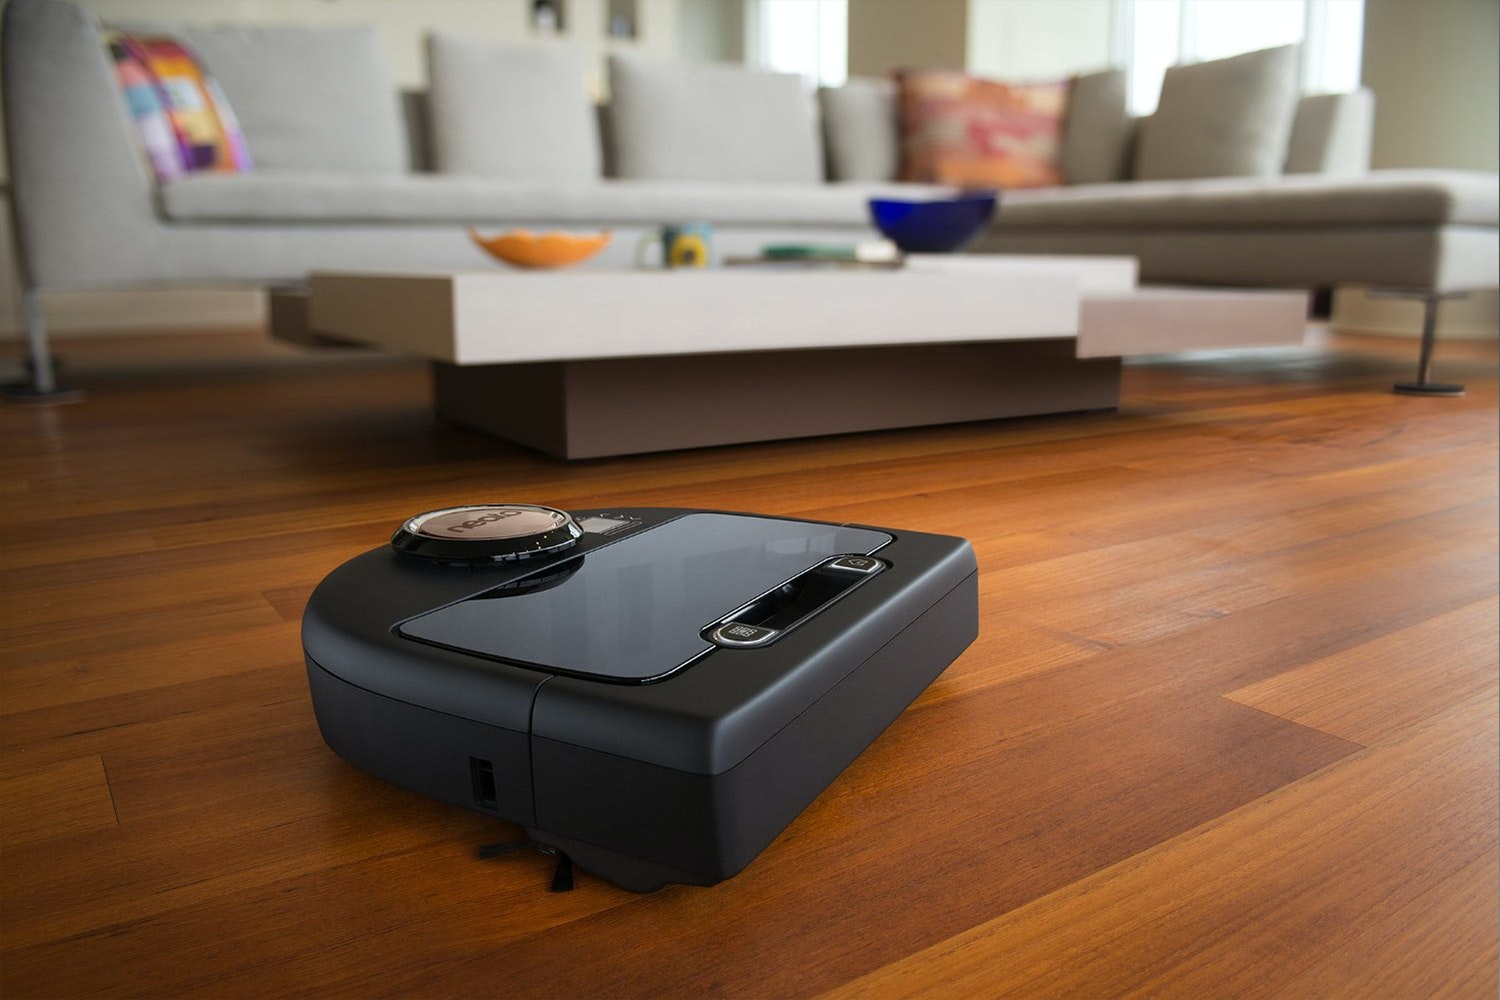 Neato Botvac Connected Wi-Fi Enabled Vacuum